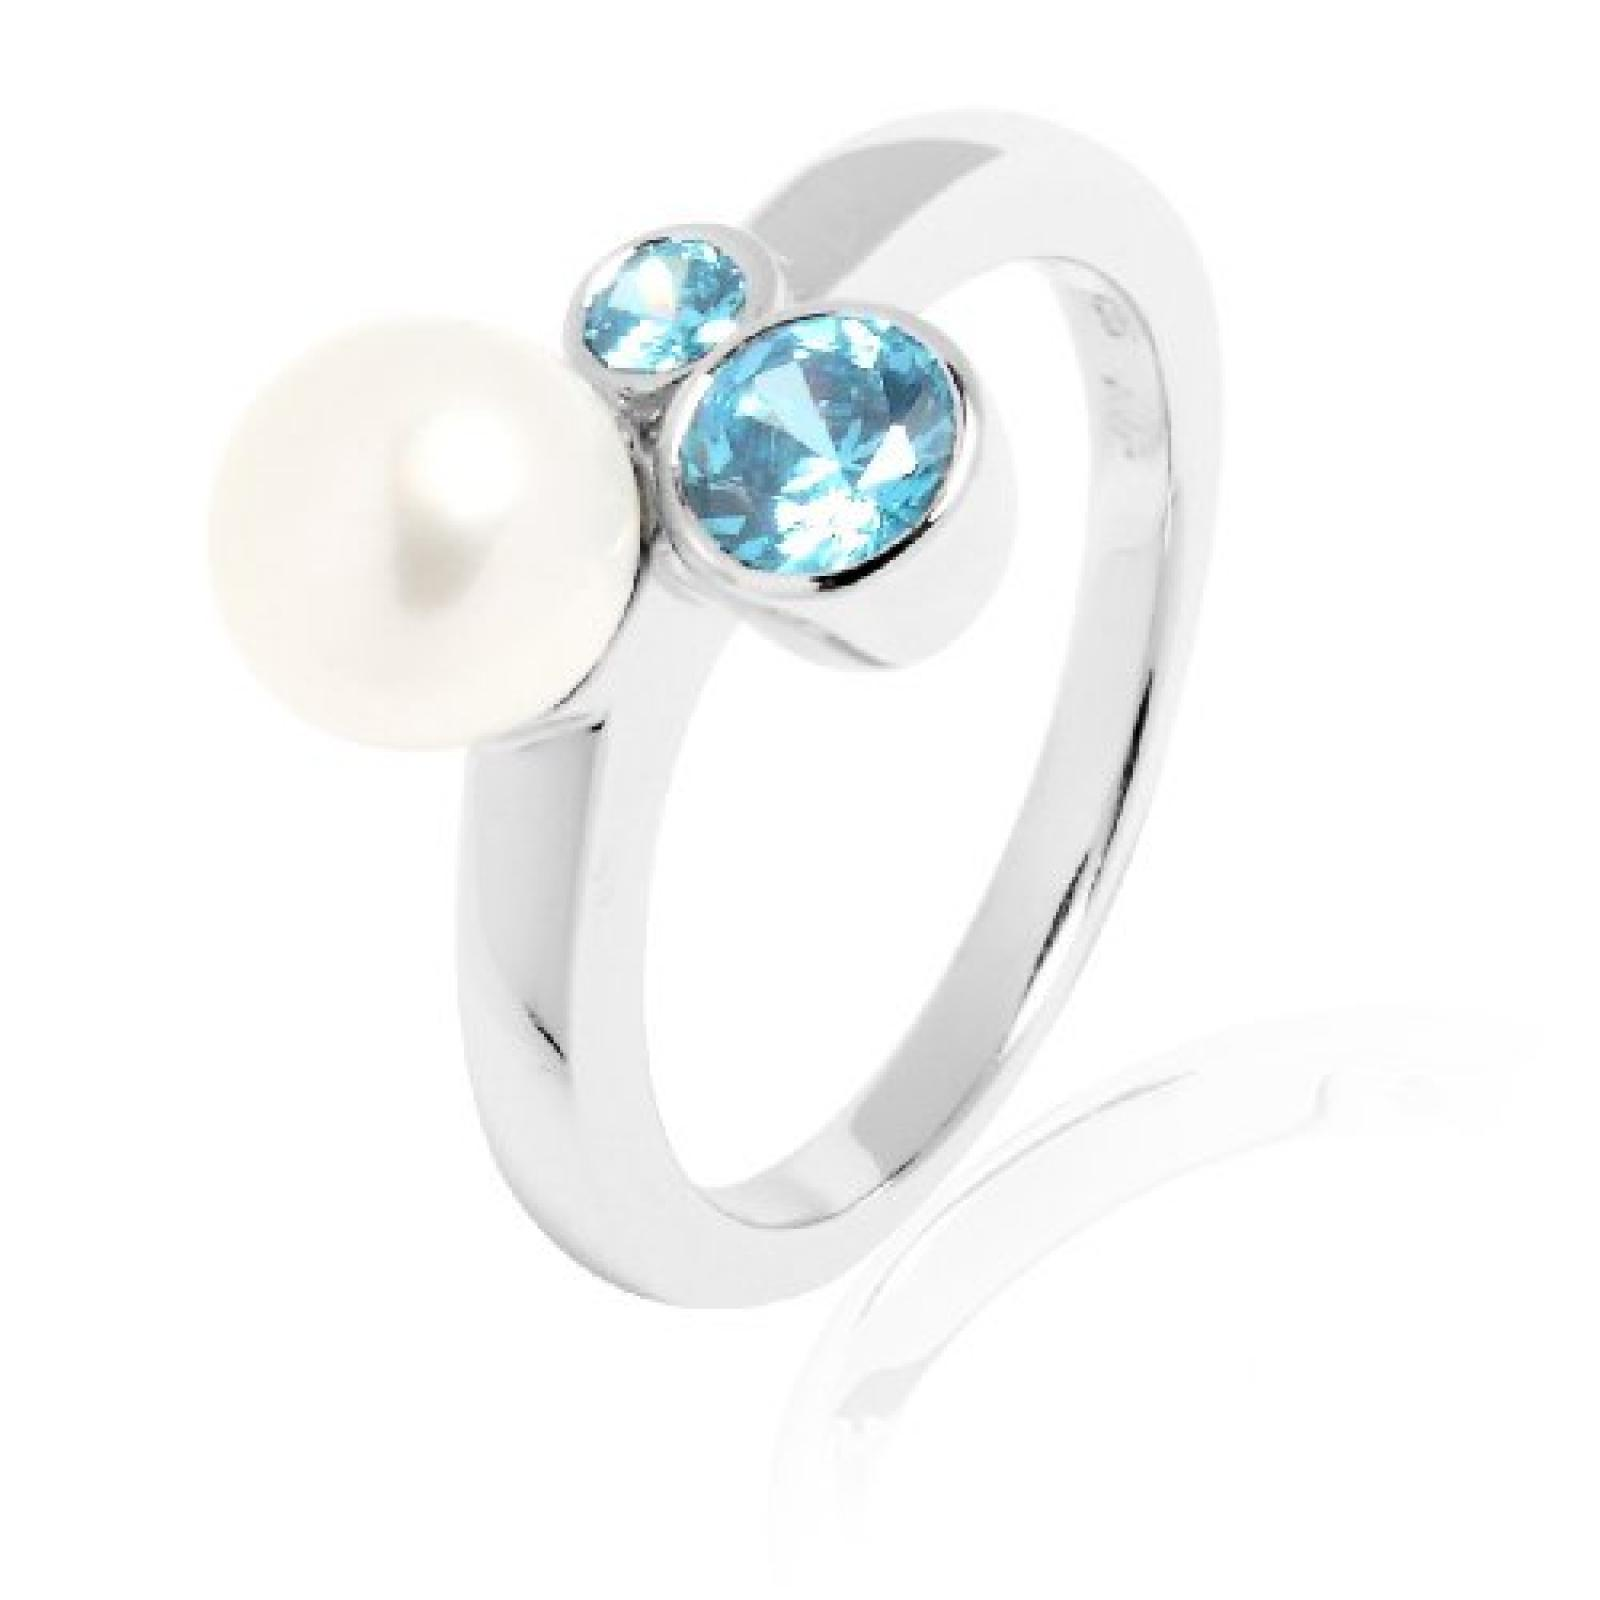 Valero Pearls Damen-Ring Silver Collection 925 Sterling Silber Süßwasser-Zuchtperlen aqua 60200015